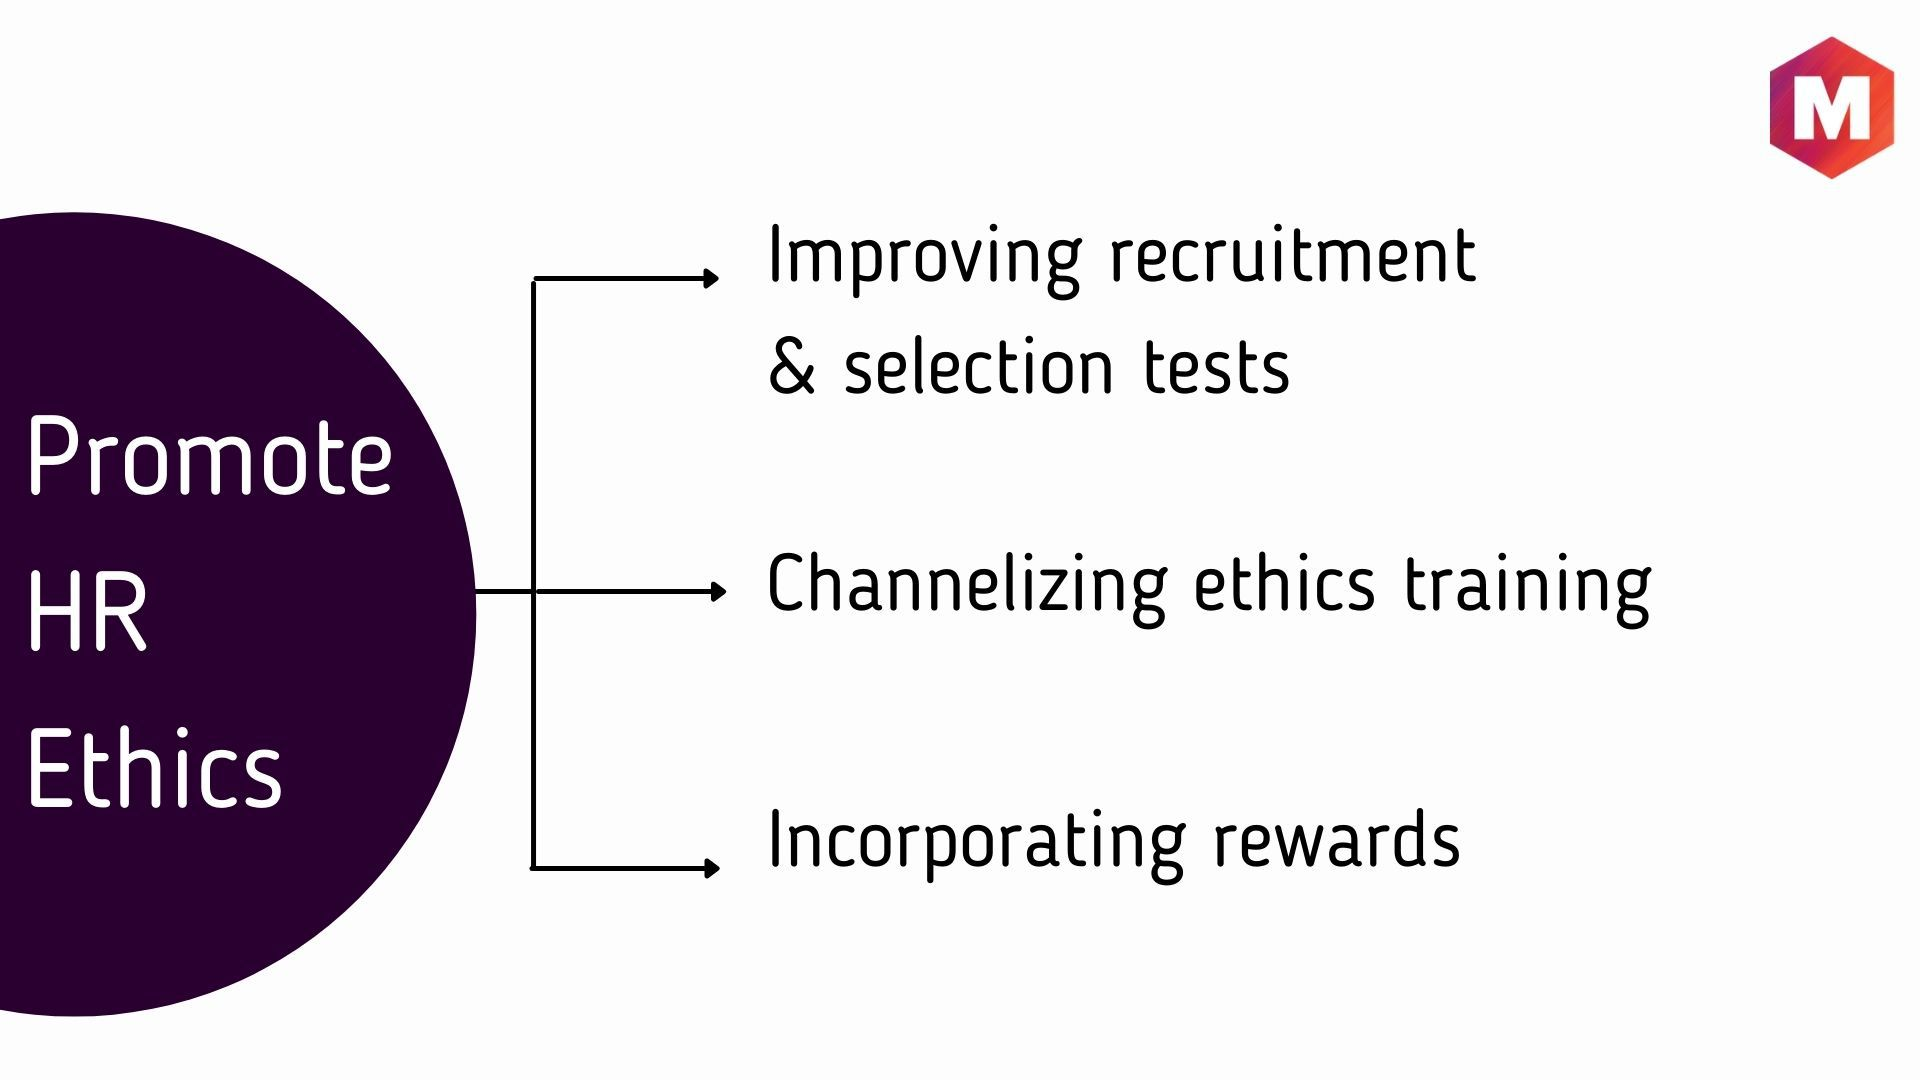 How HRM can promote HR Ethics